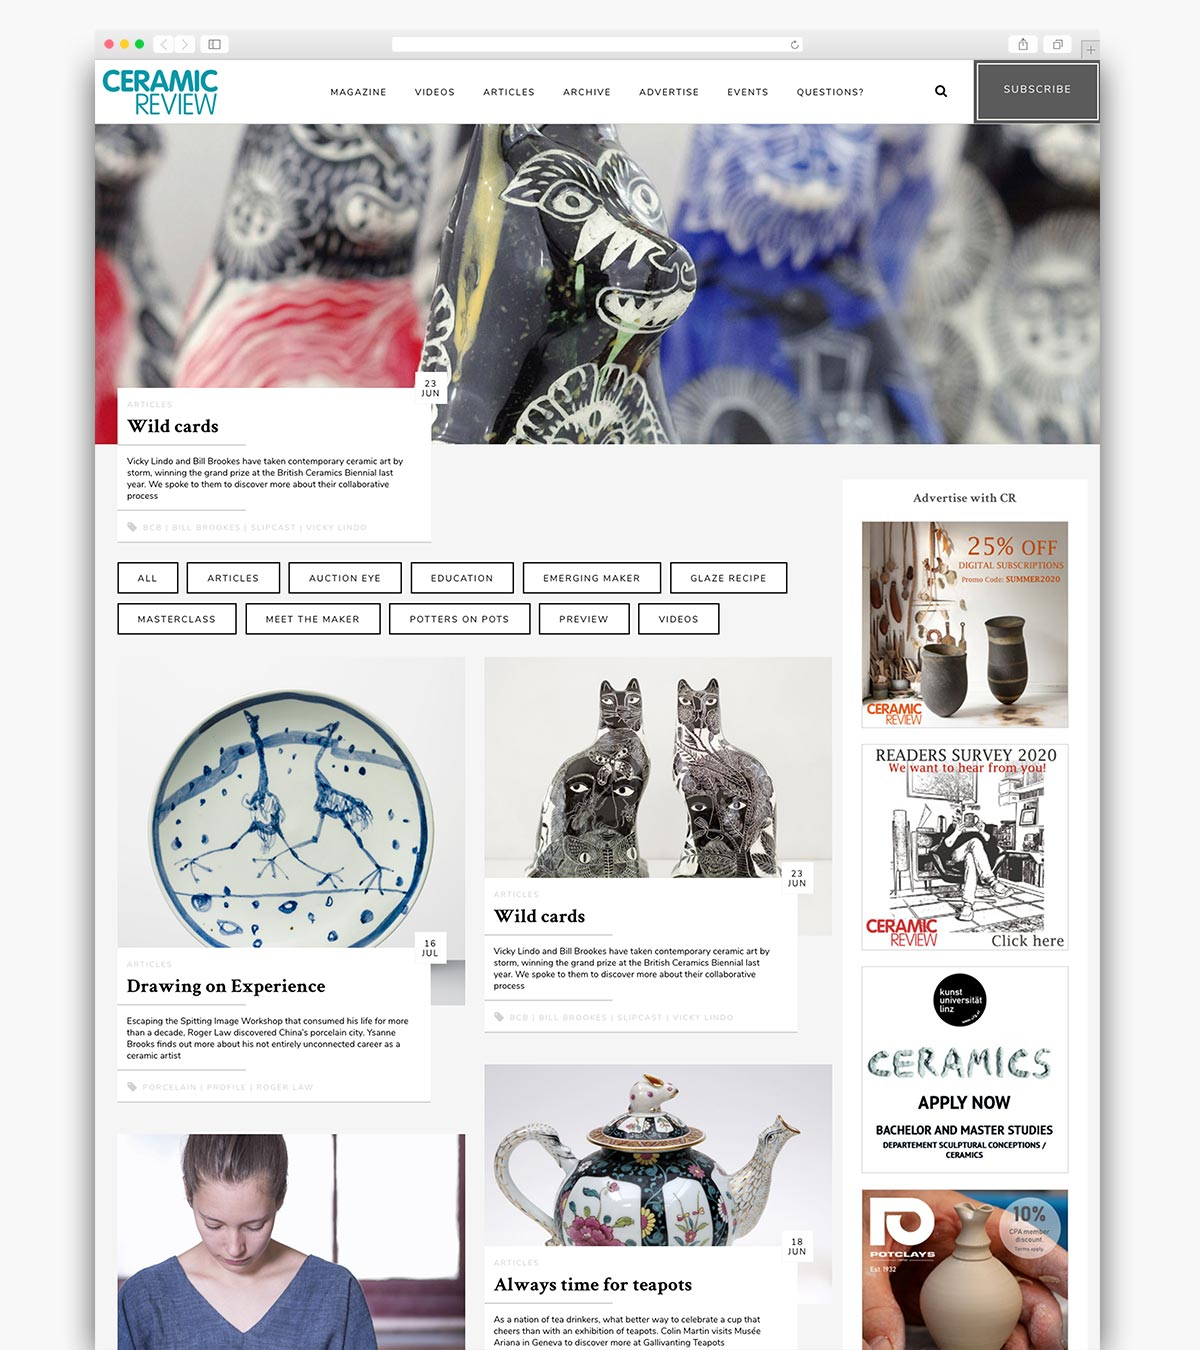 Ceramic Review Wordpress Website Homepage Design